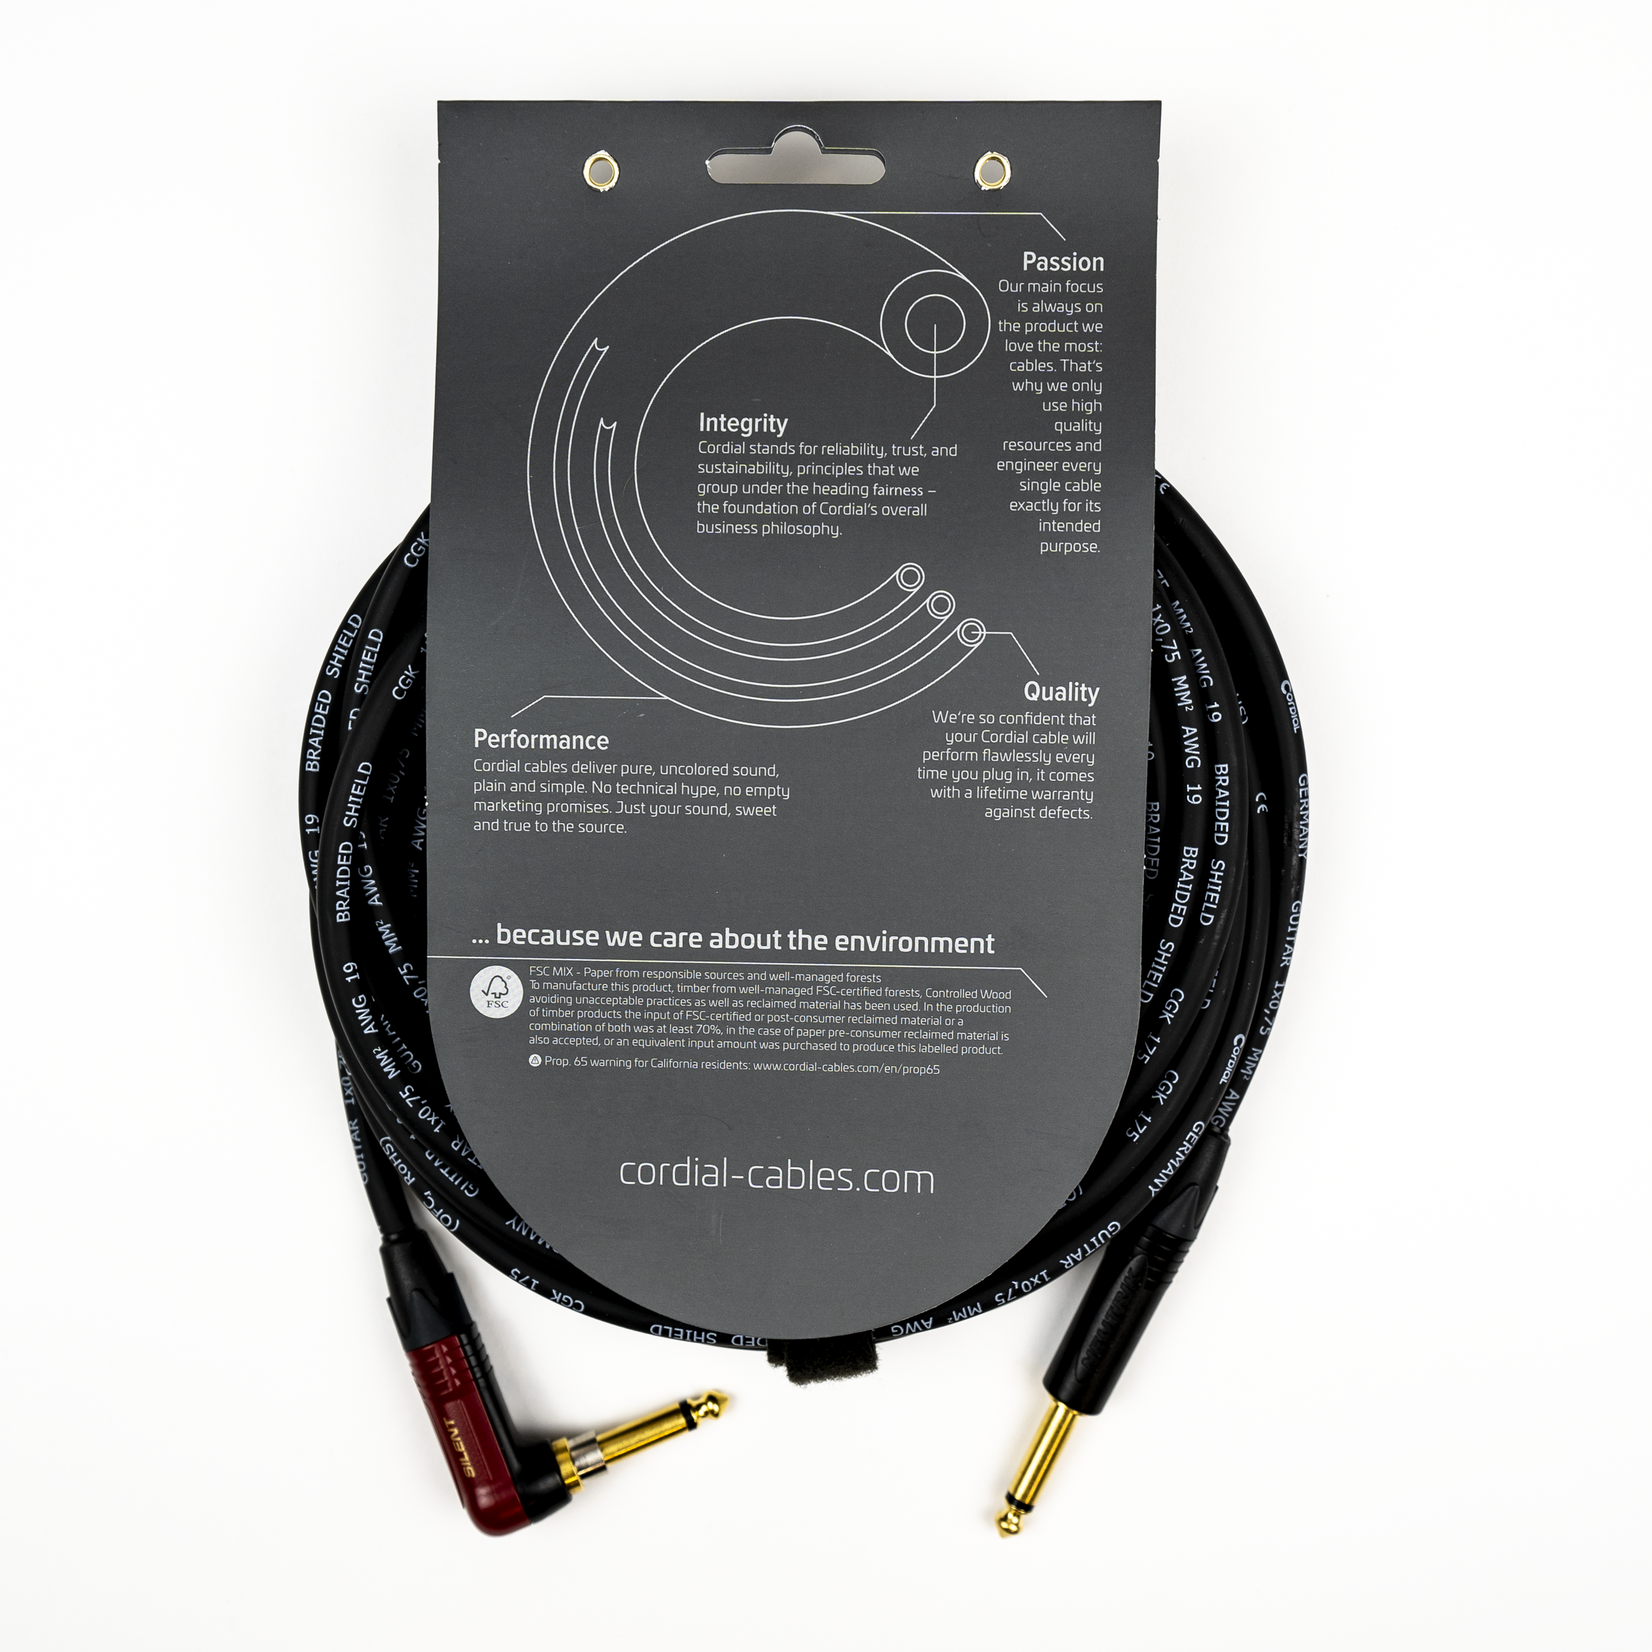 Cordial Cables Cordial 3m /~10ft Premium High-Copper German Inst. Cable, 1/4''-RA Neutrik Silent, CSI 3 RP-SILENT